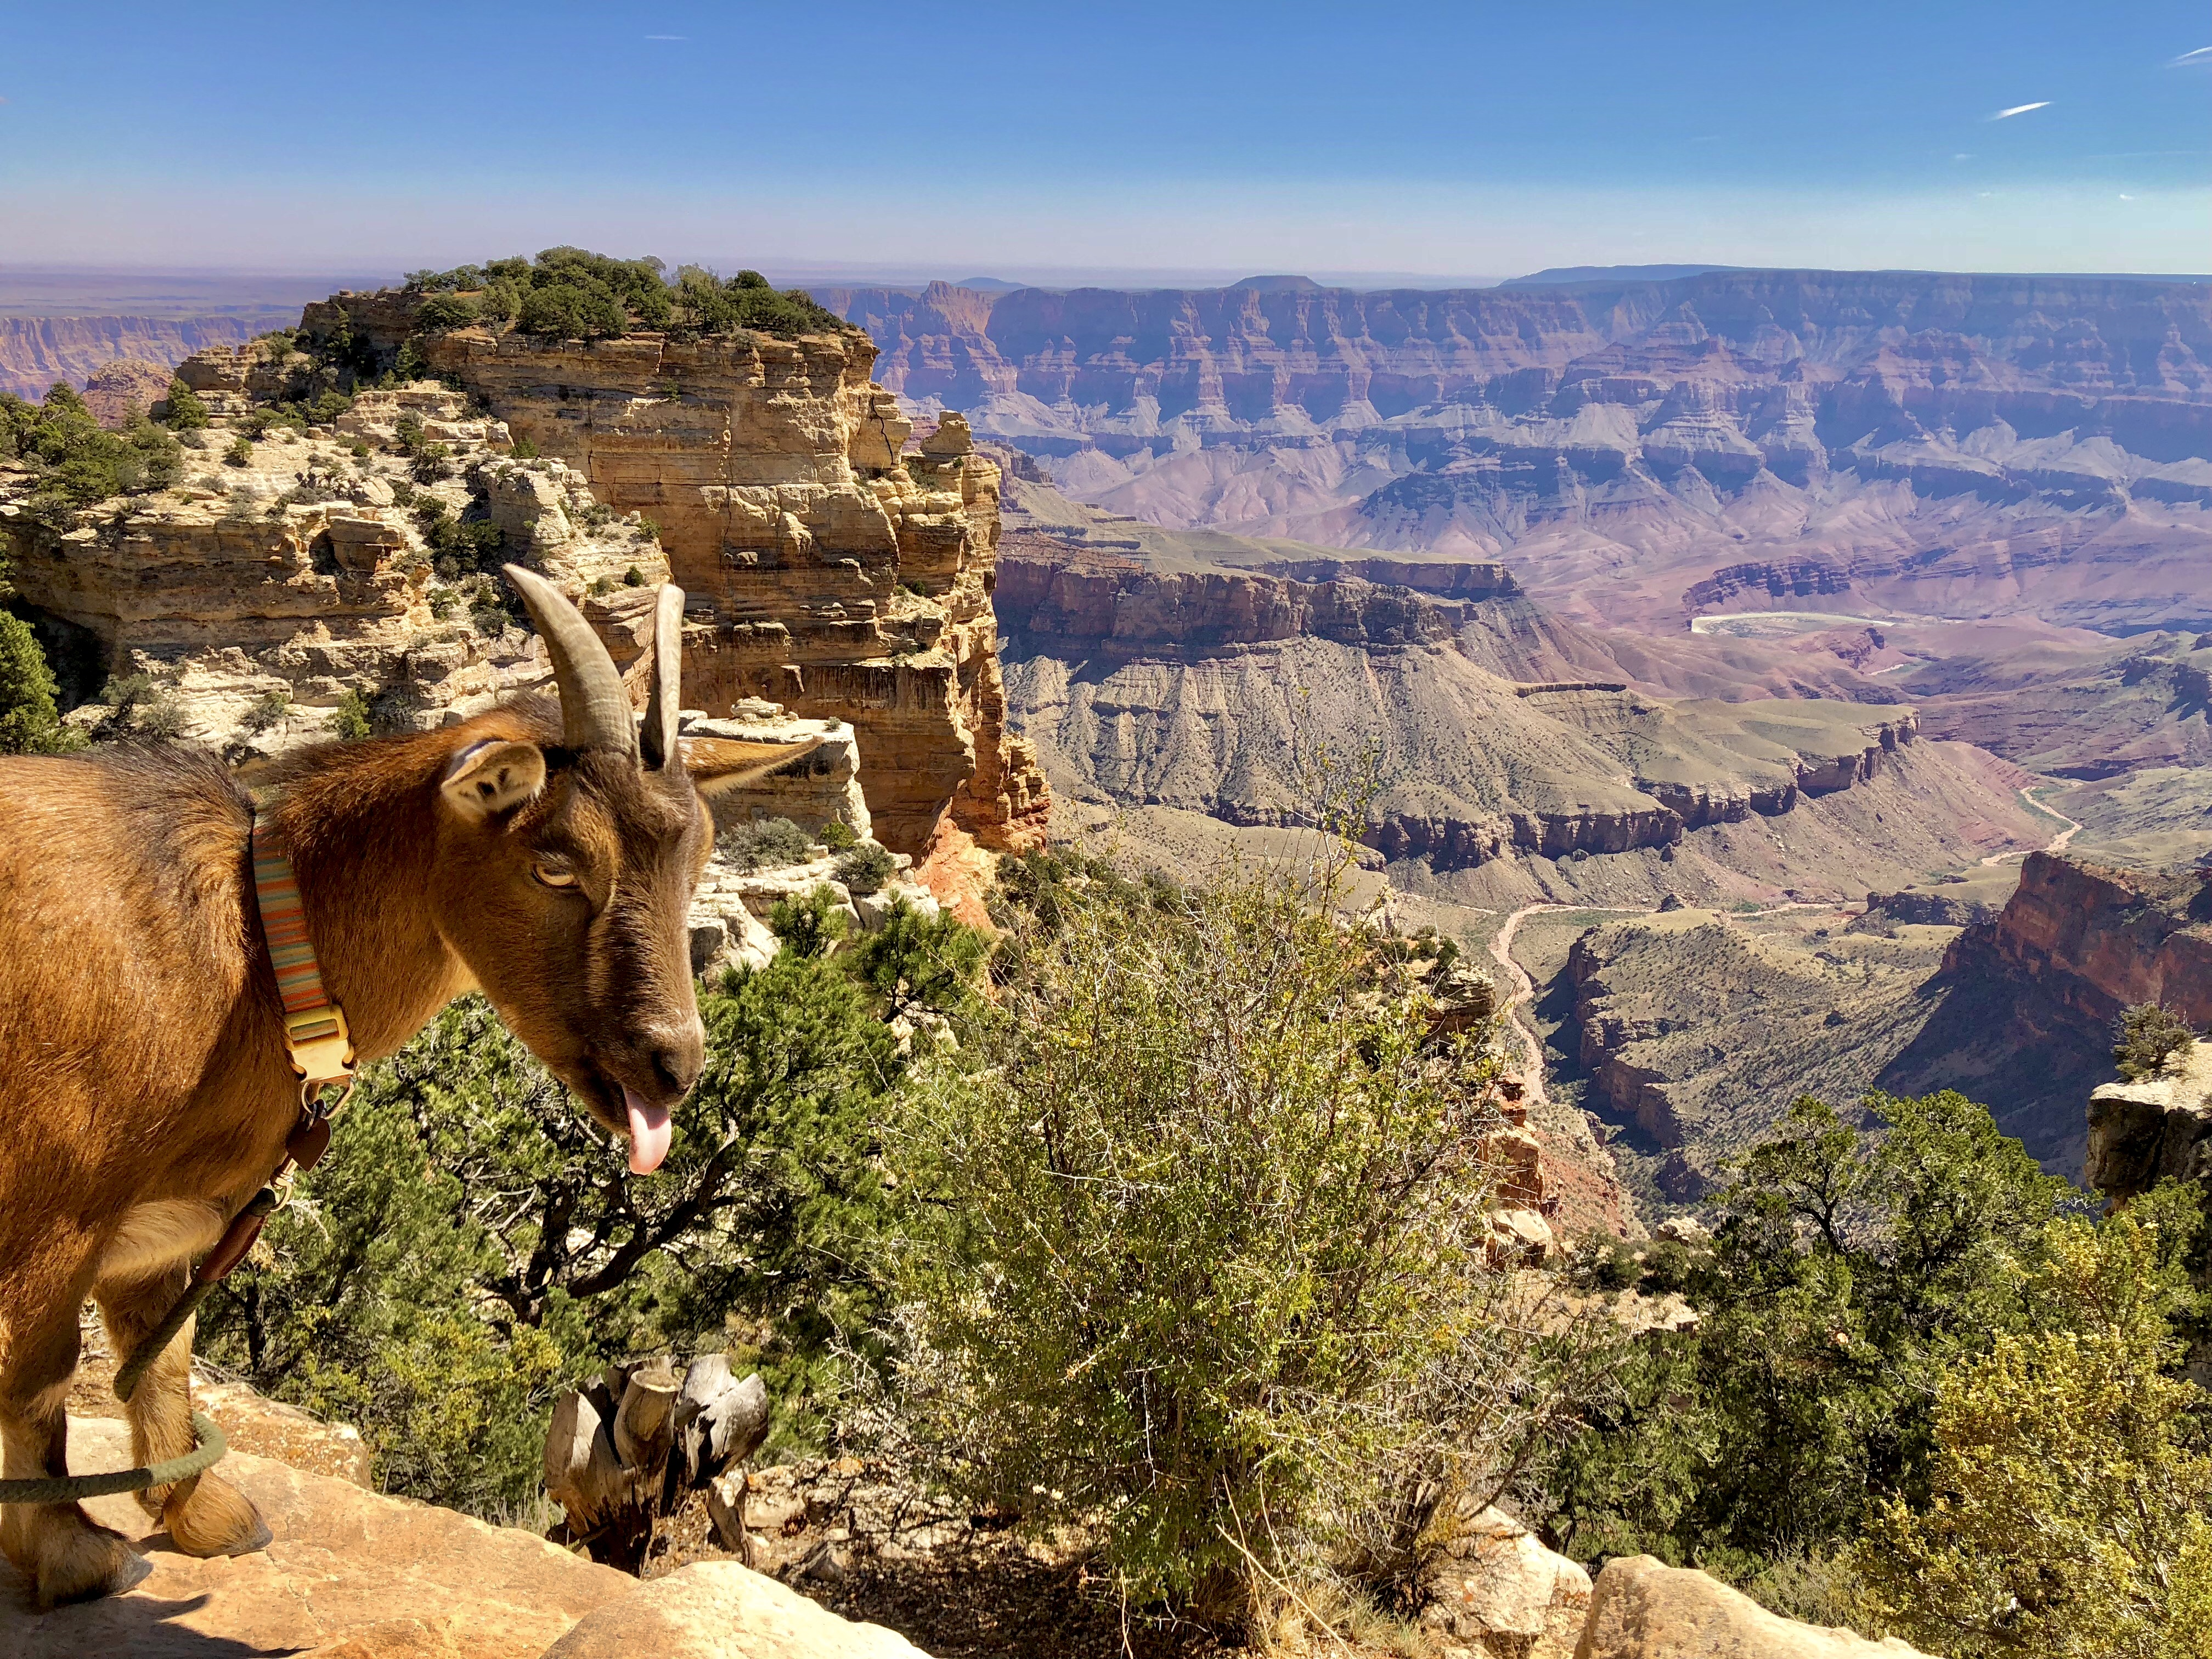 Goat with tongue protruding on cliff overlooking a mesa.